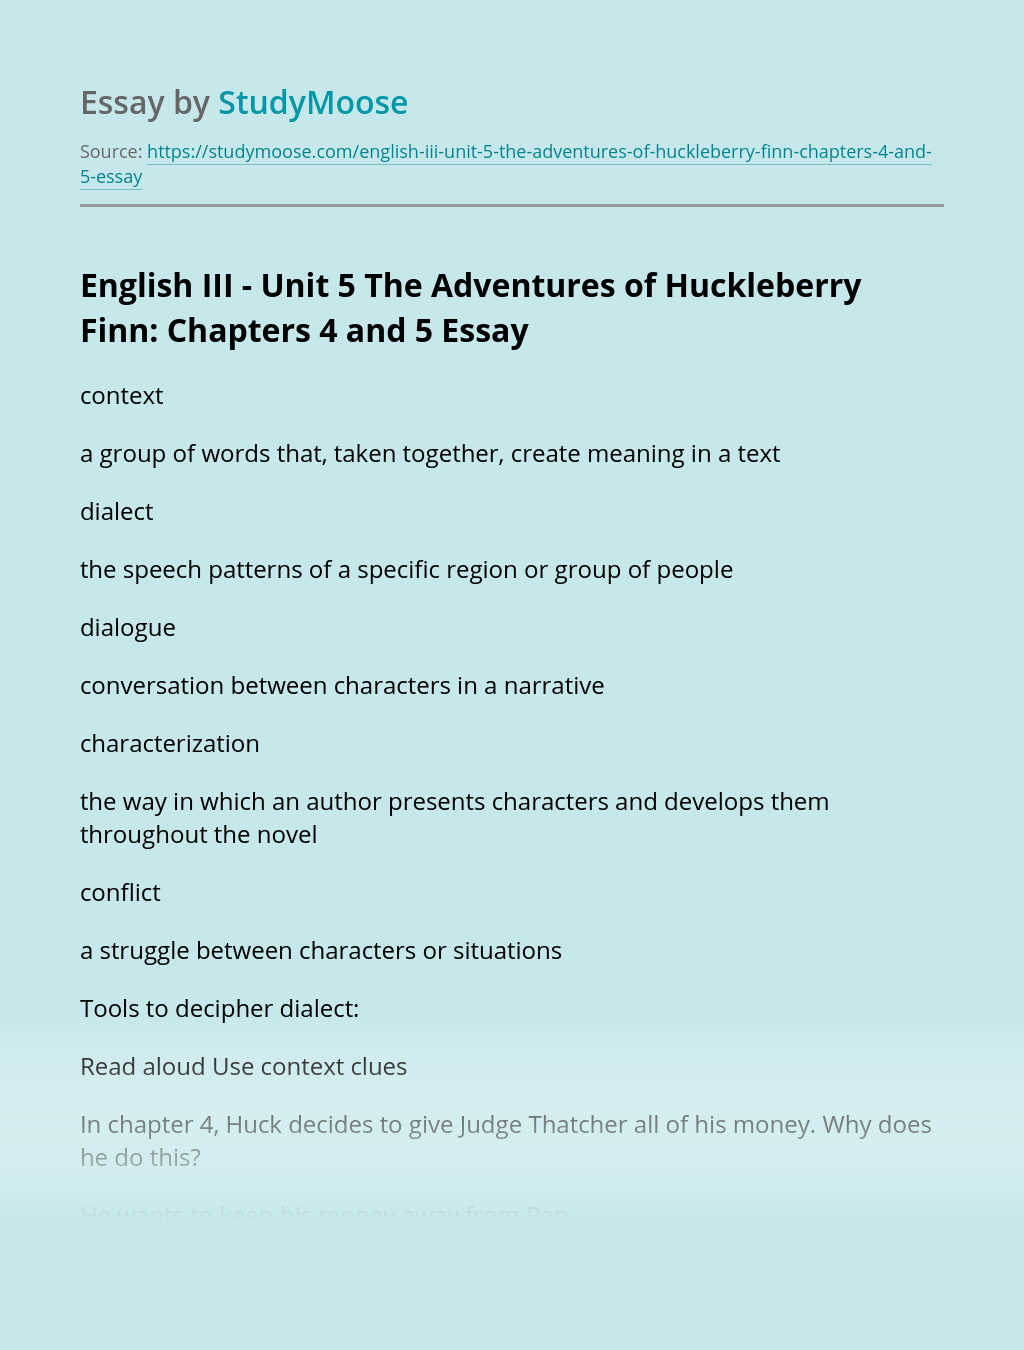 English III - Unit 5  The Adventures of Huckleberry Finn: Chapters 4 and 5